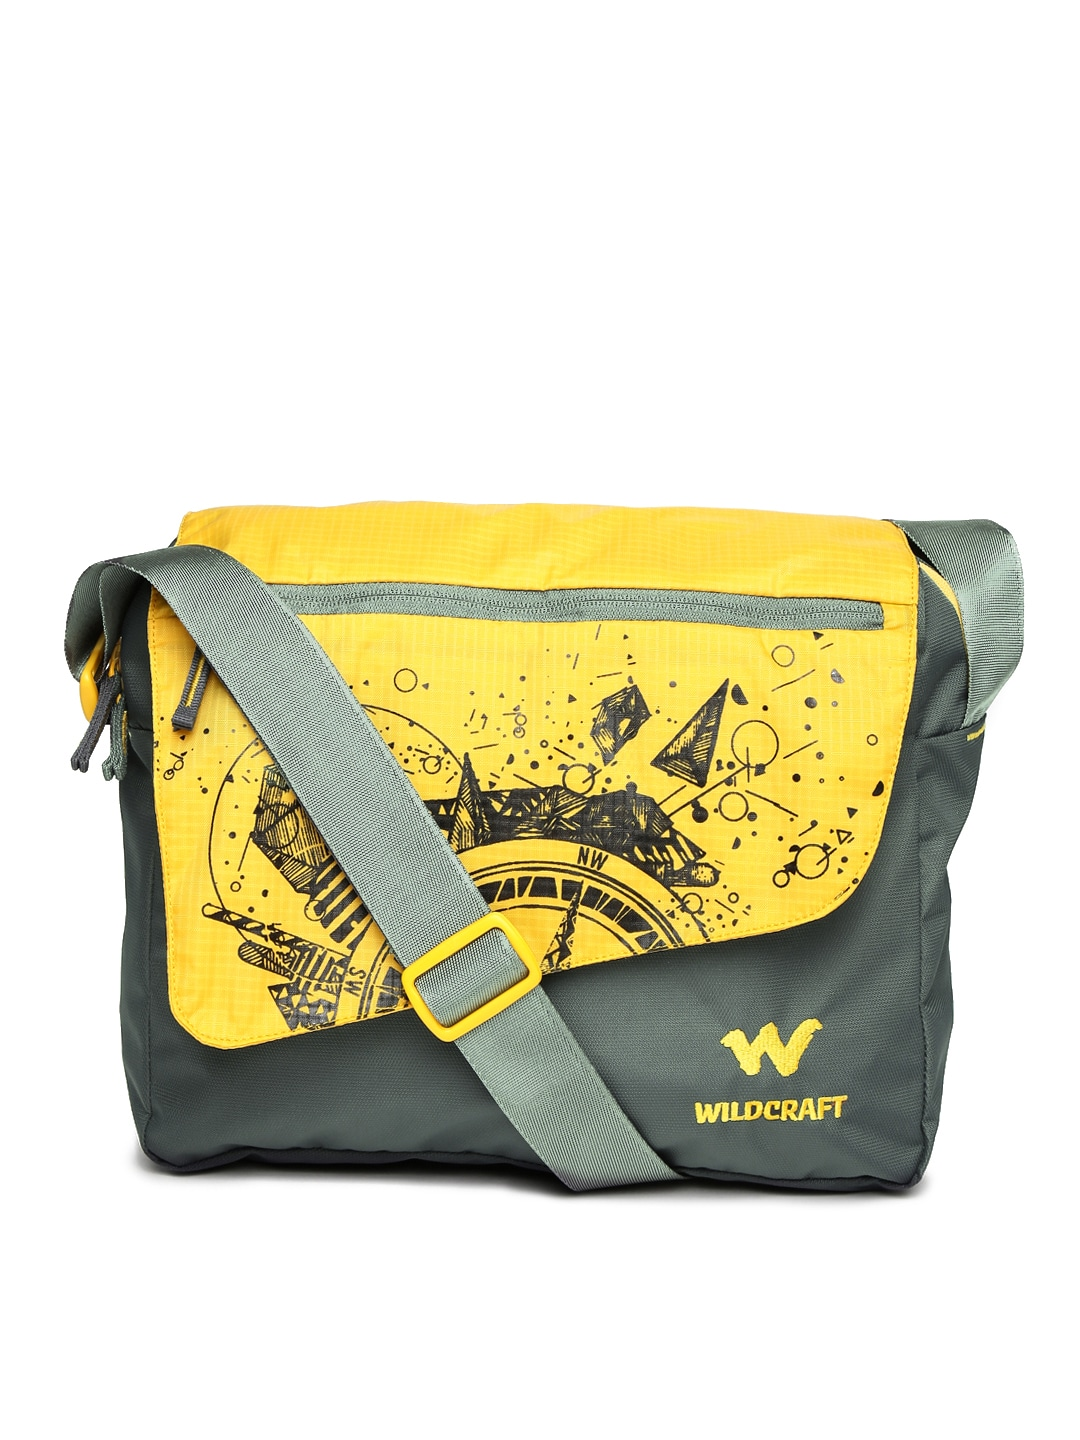 1da80432d9c Wildcraft Messenger Bag - Buy Wildcraft Messenger Bag online in India